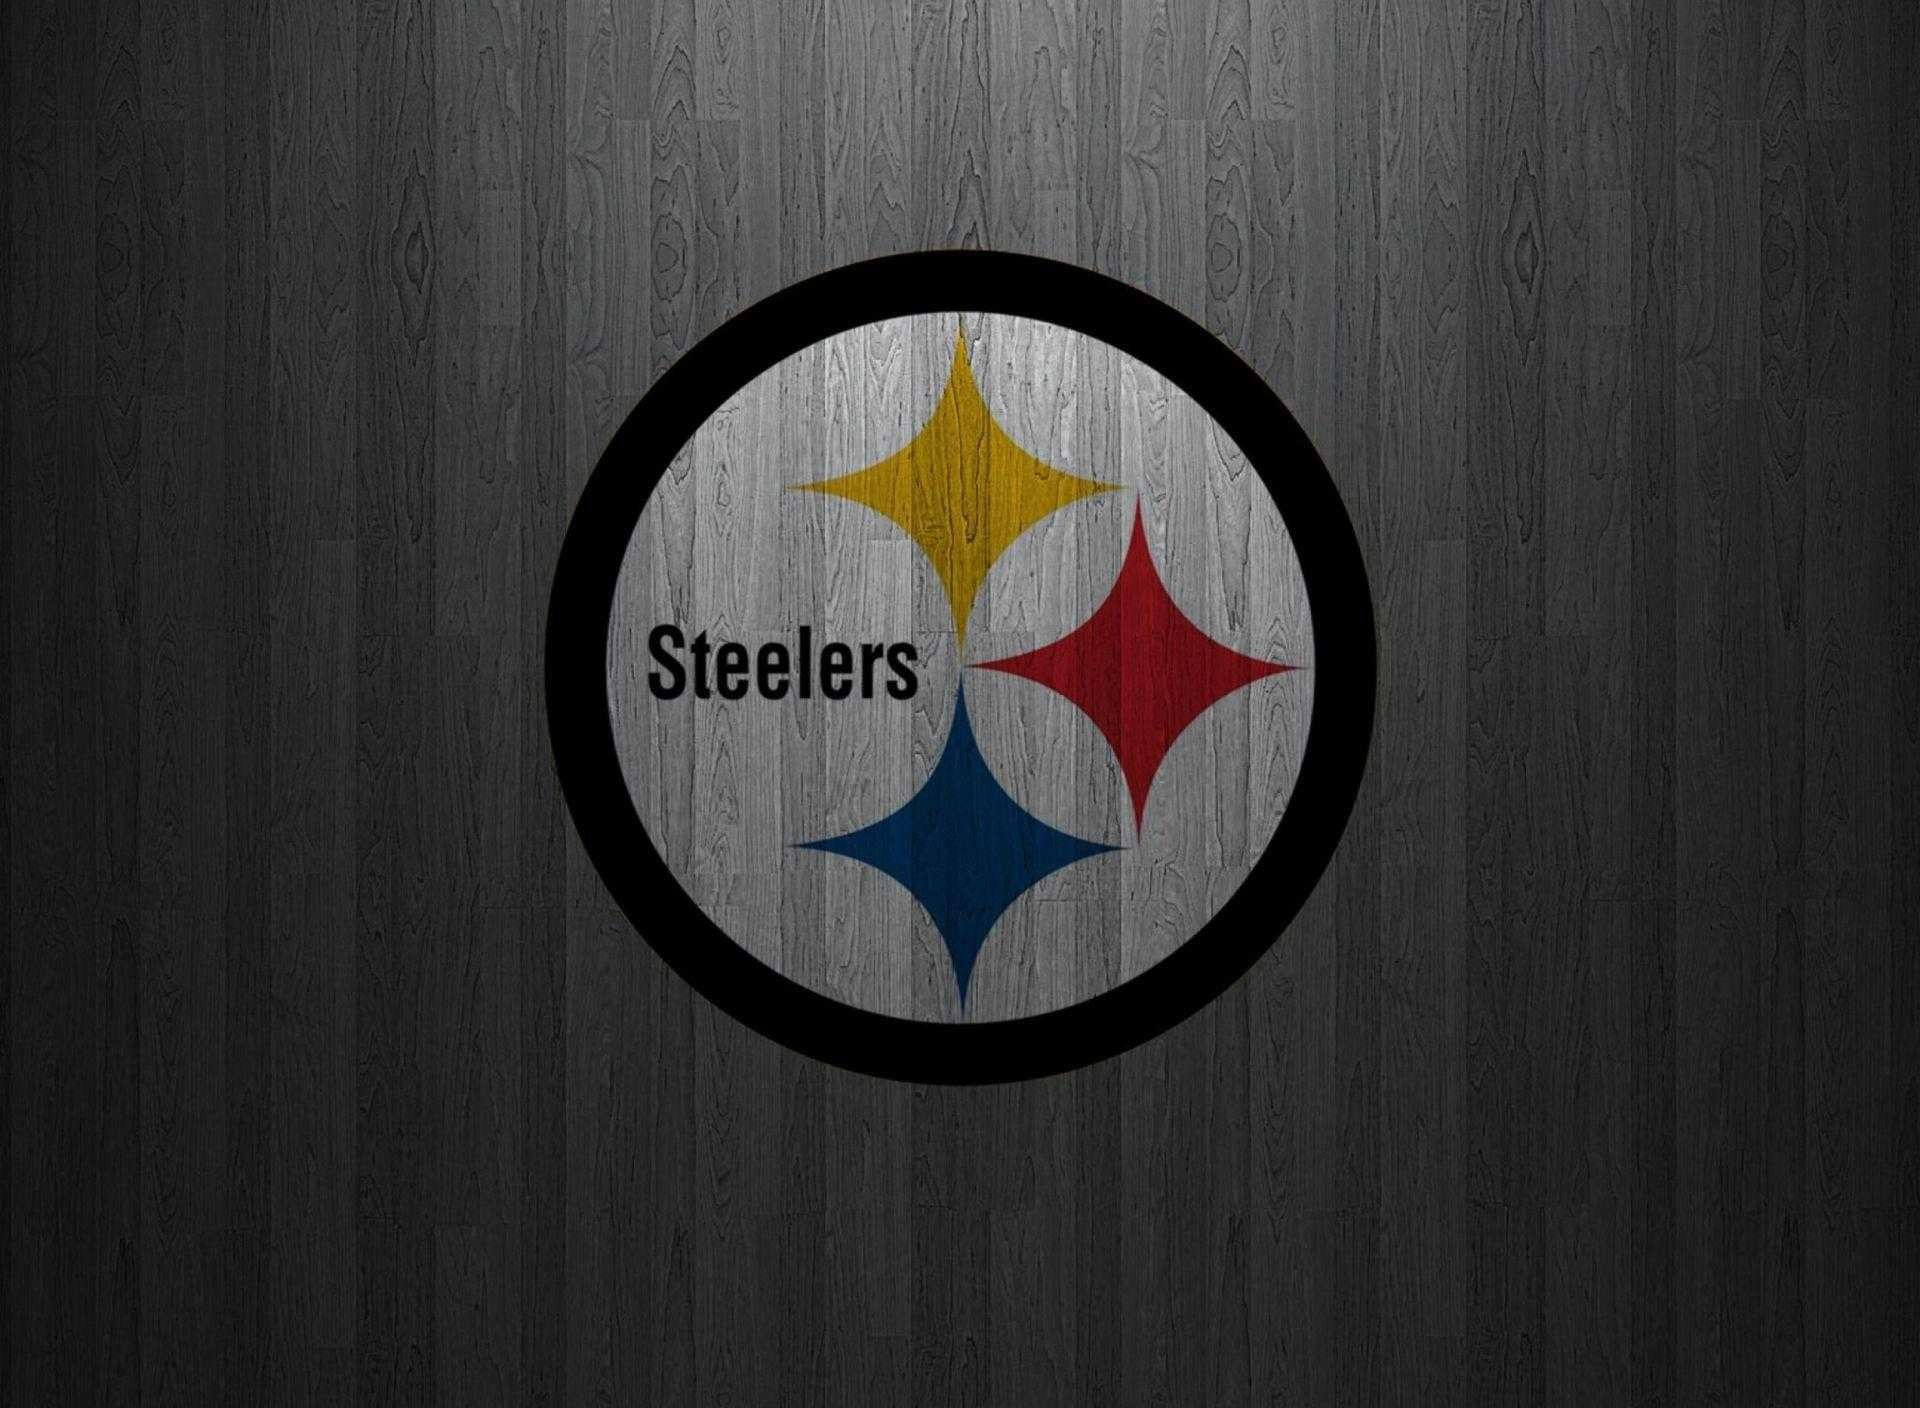 1920x1408 - Steelers Desktop 27